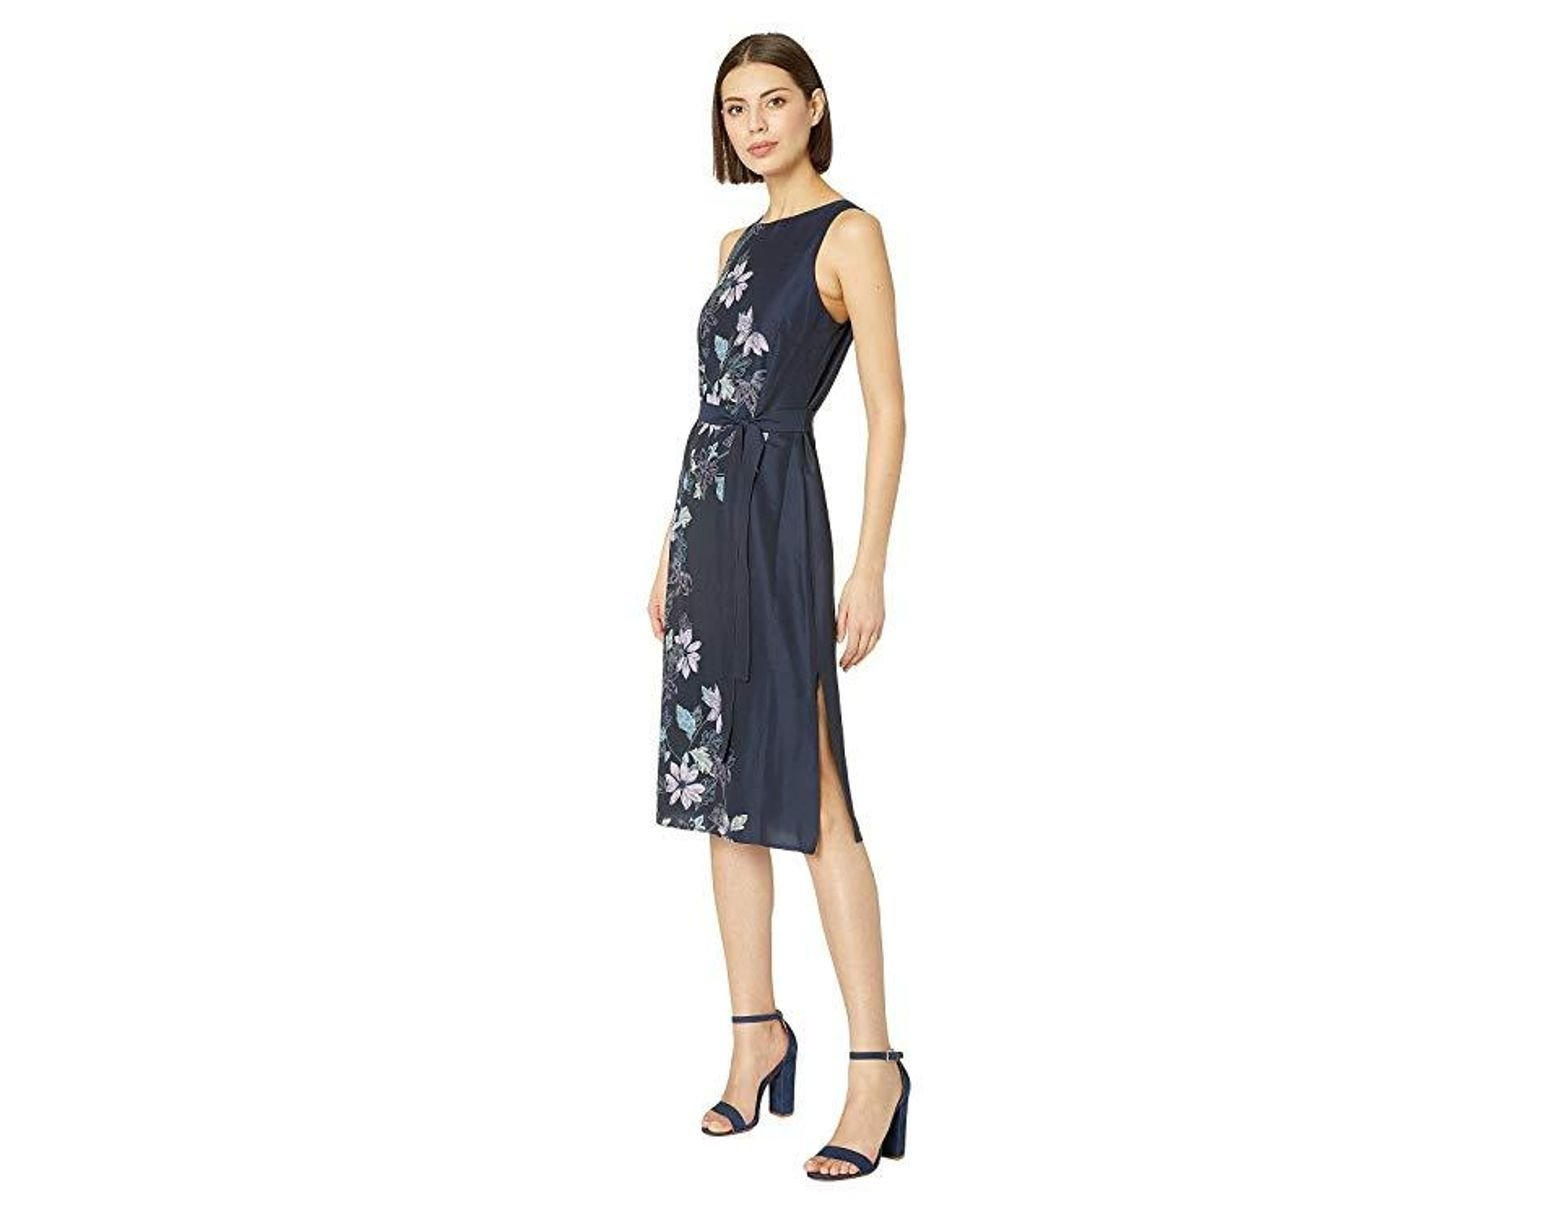 3586f84adf Vince Camuto Sleeveless Floral Vines Tie Waist Dress (classic Navy) Dress  in Blue - Save 62% - Lyst